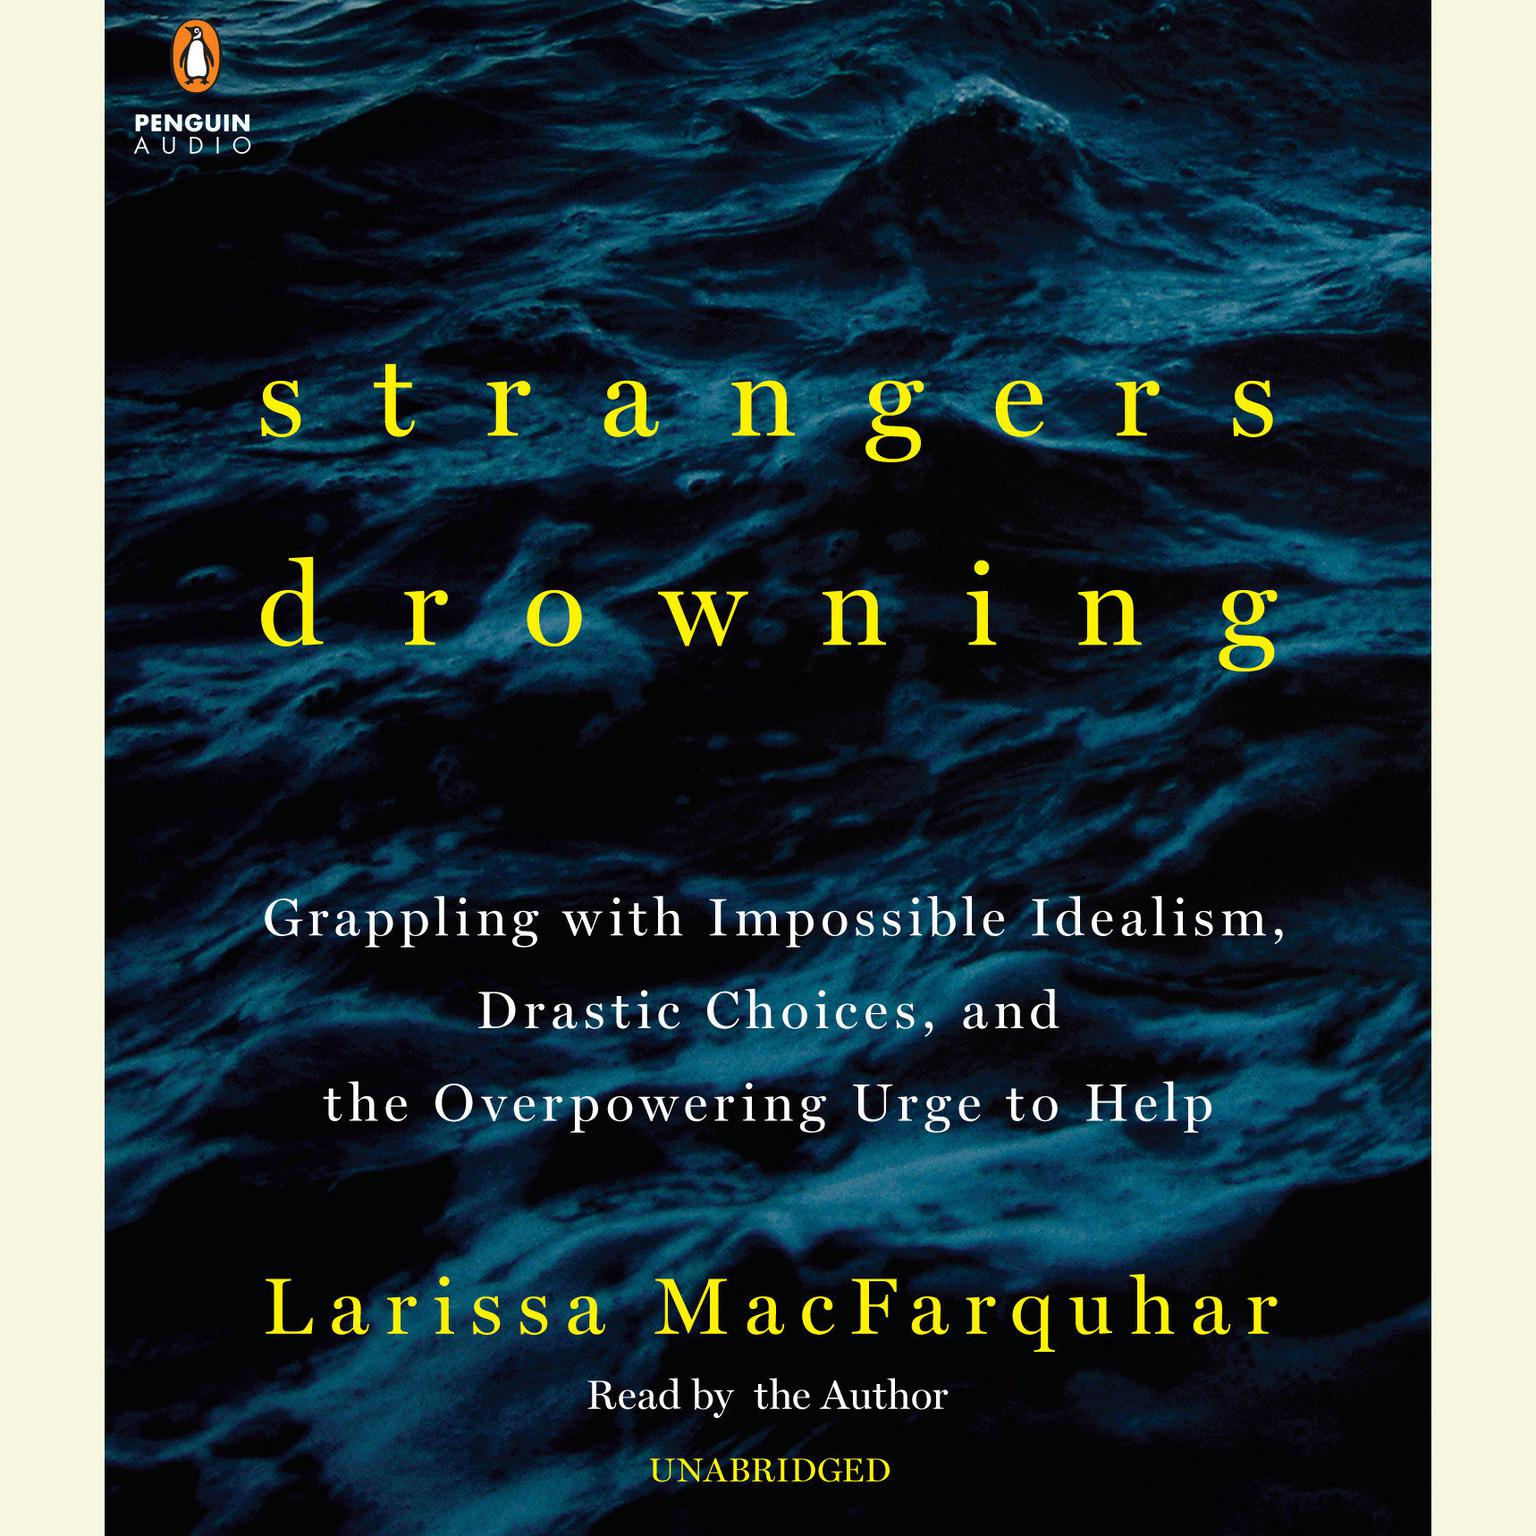 Printable Strangers Drowning: Grappling with Impossible Idealism, Drastic Choices, and the Overpowering Urge to Help Audiobook Cover Art